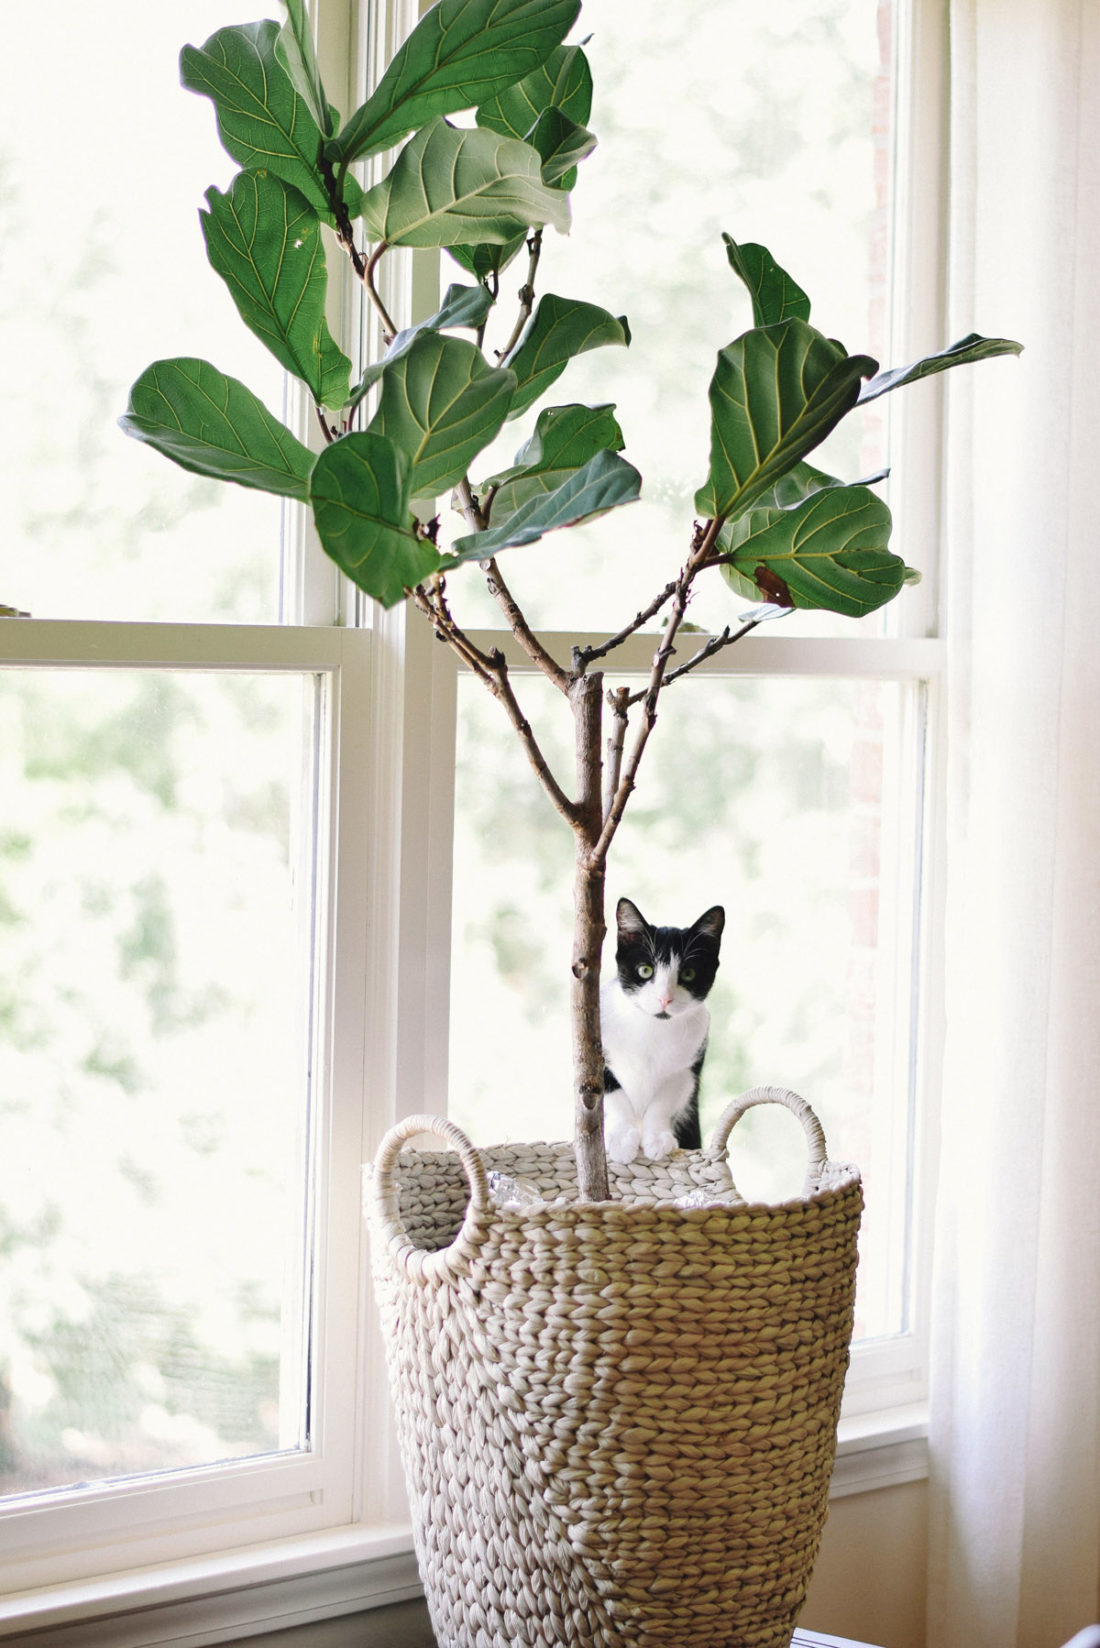 leafy the fiddle leaf fig: cat proofing, leaf rooting, and other plant struggles overcome!